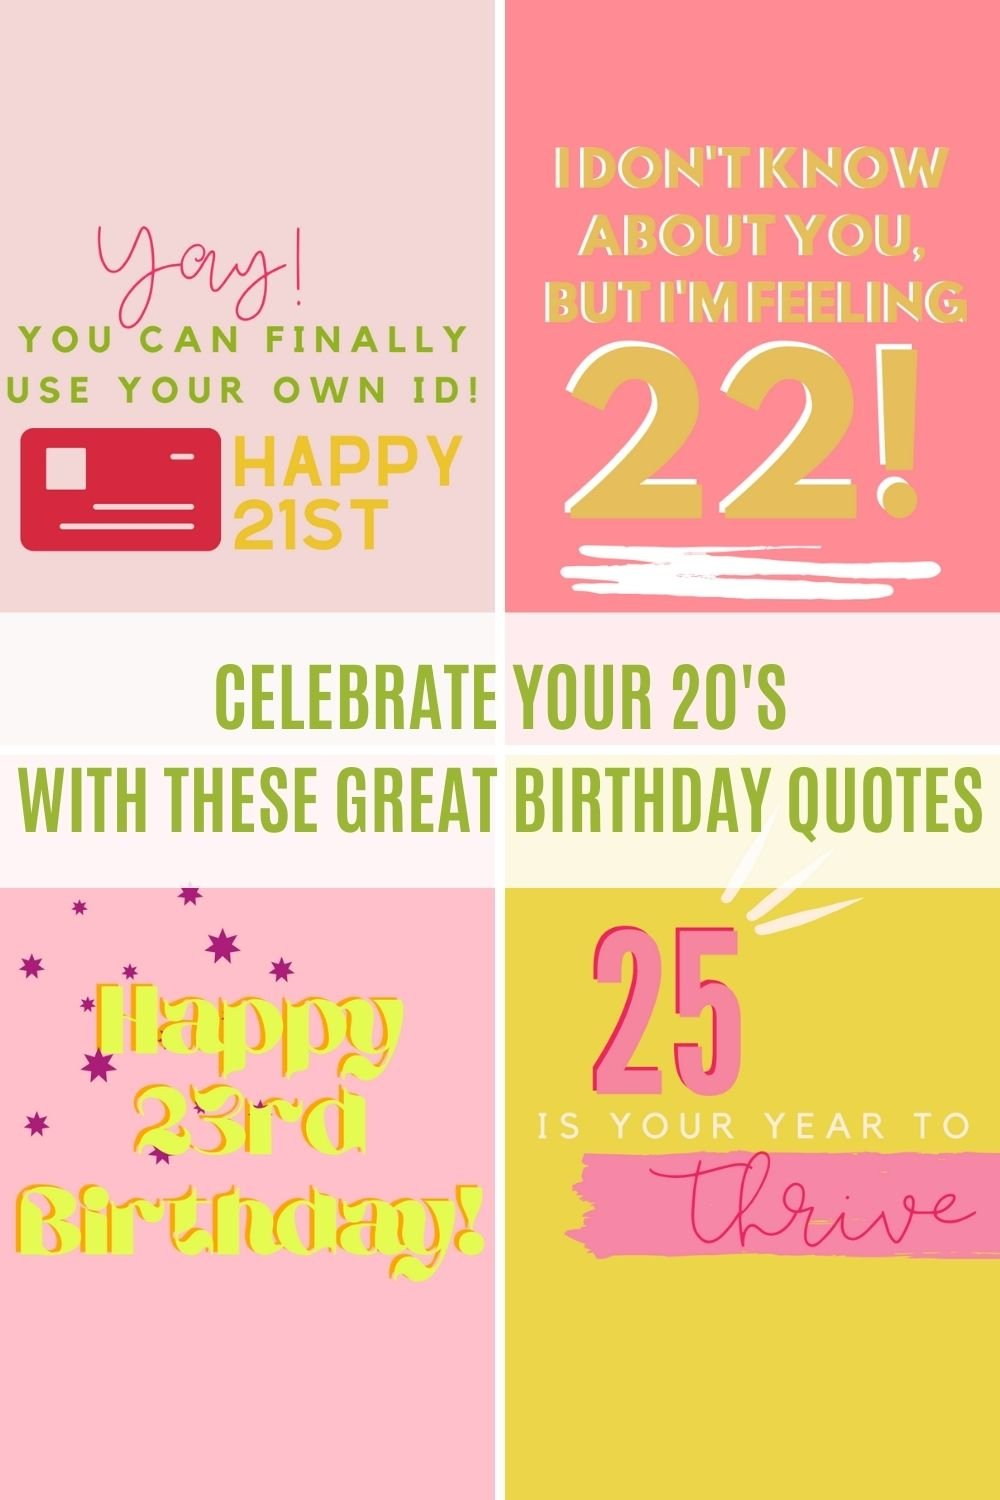 Best Birthday Quotes For Your 20's